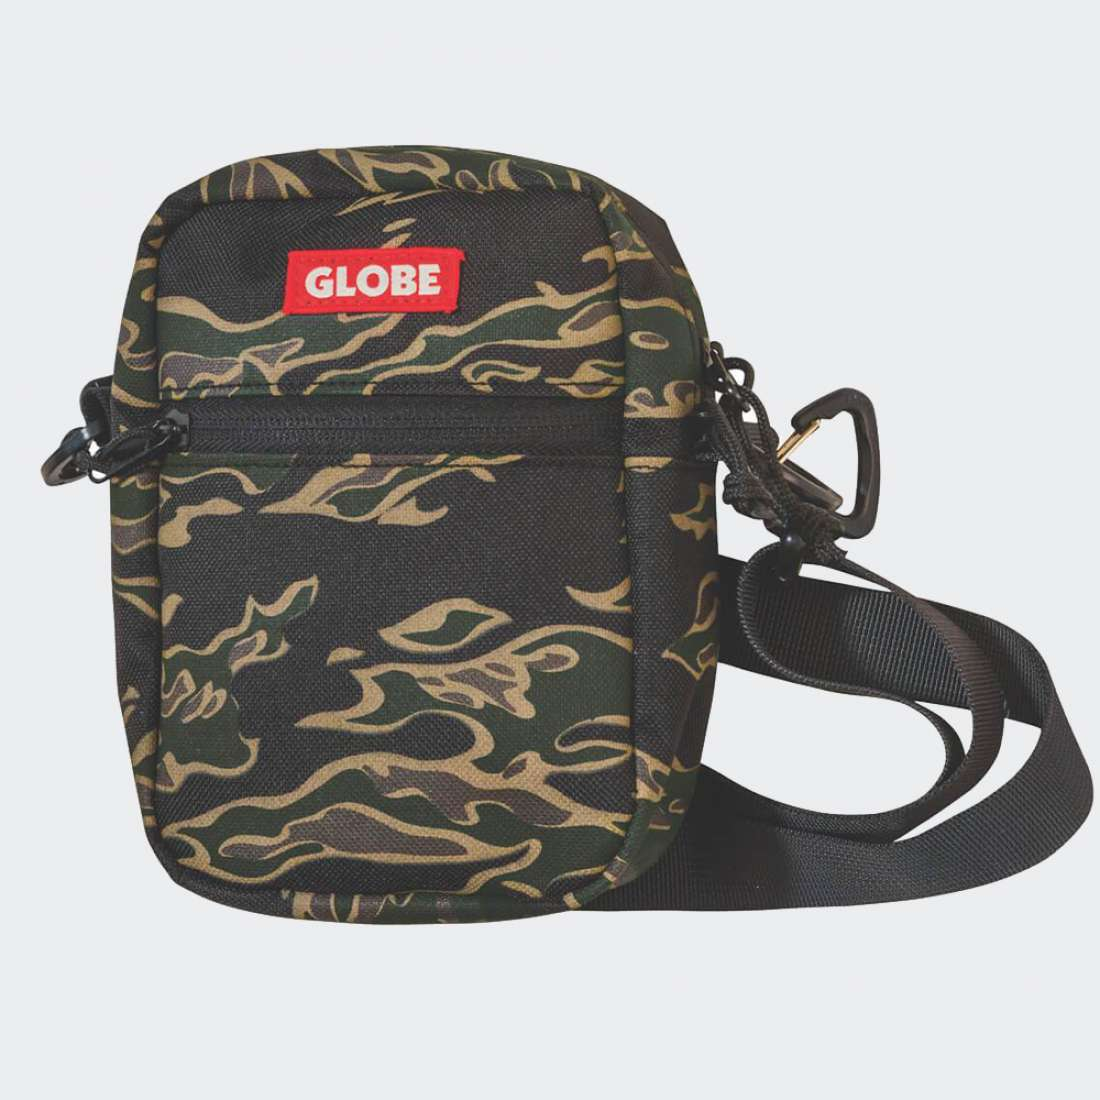 BOLSA GLOBE BAR SLING - GB71939012_TIGERCAMO.jpg